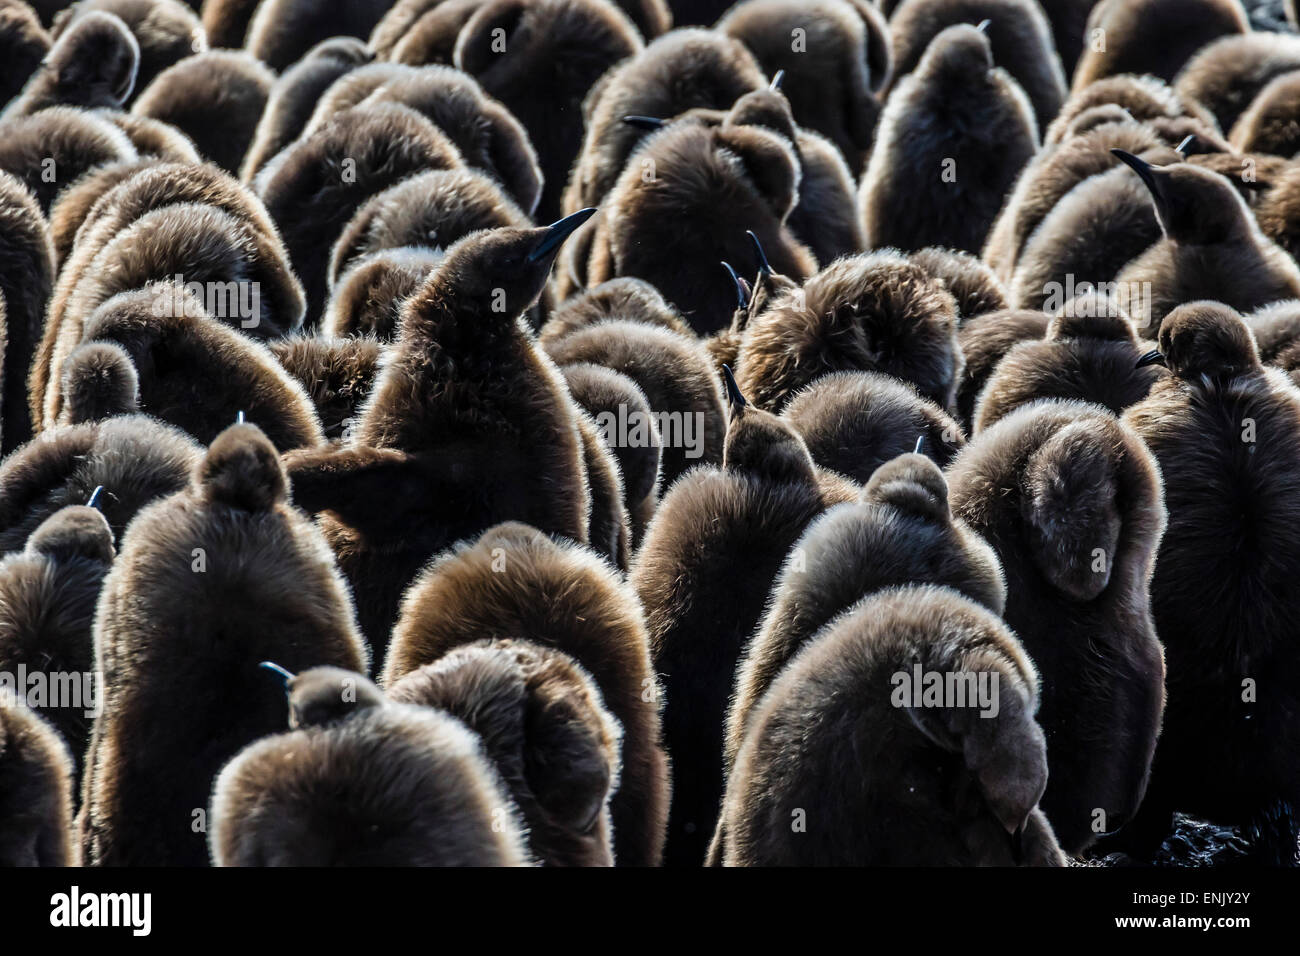 Juvenile king penguins (Aptenodytes patagonicus) at breeding colony at Salisbury Plain, South Georgia, Polar Regions - Stock Image